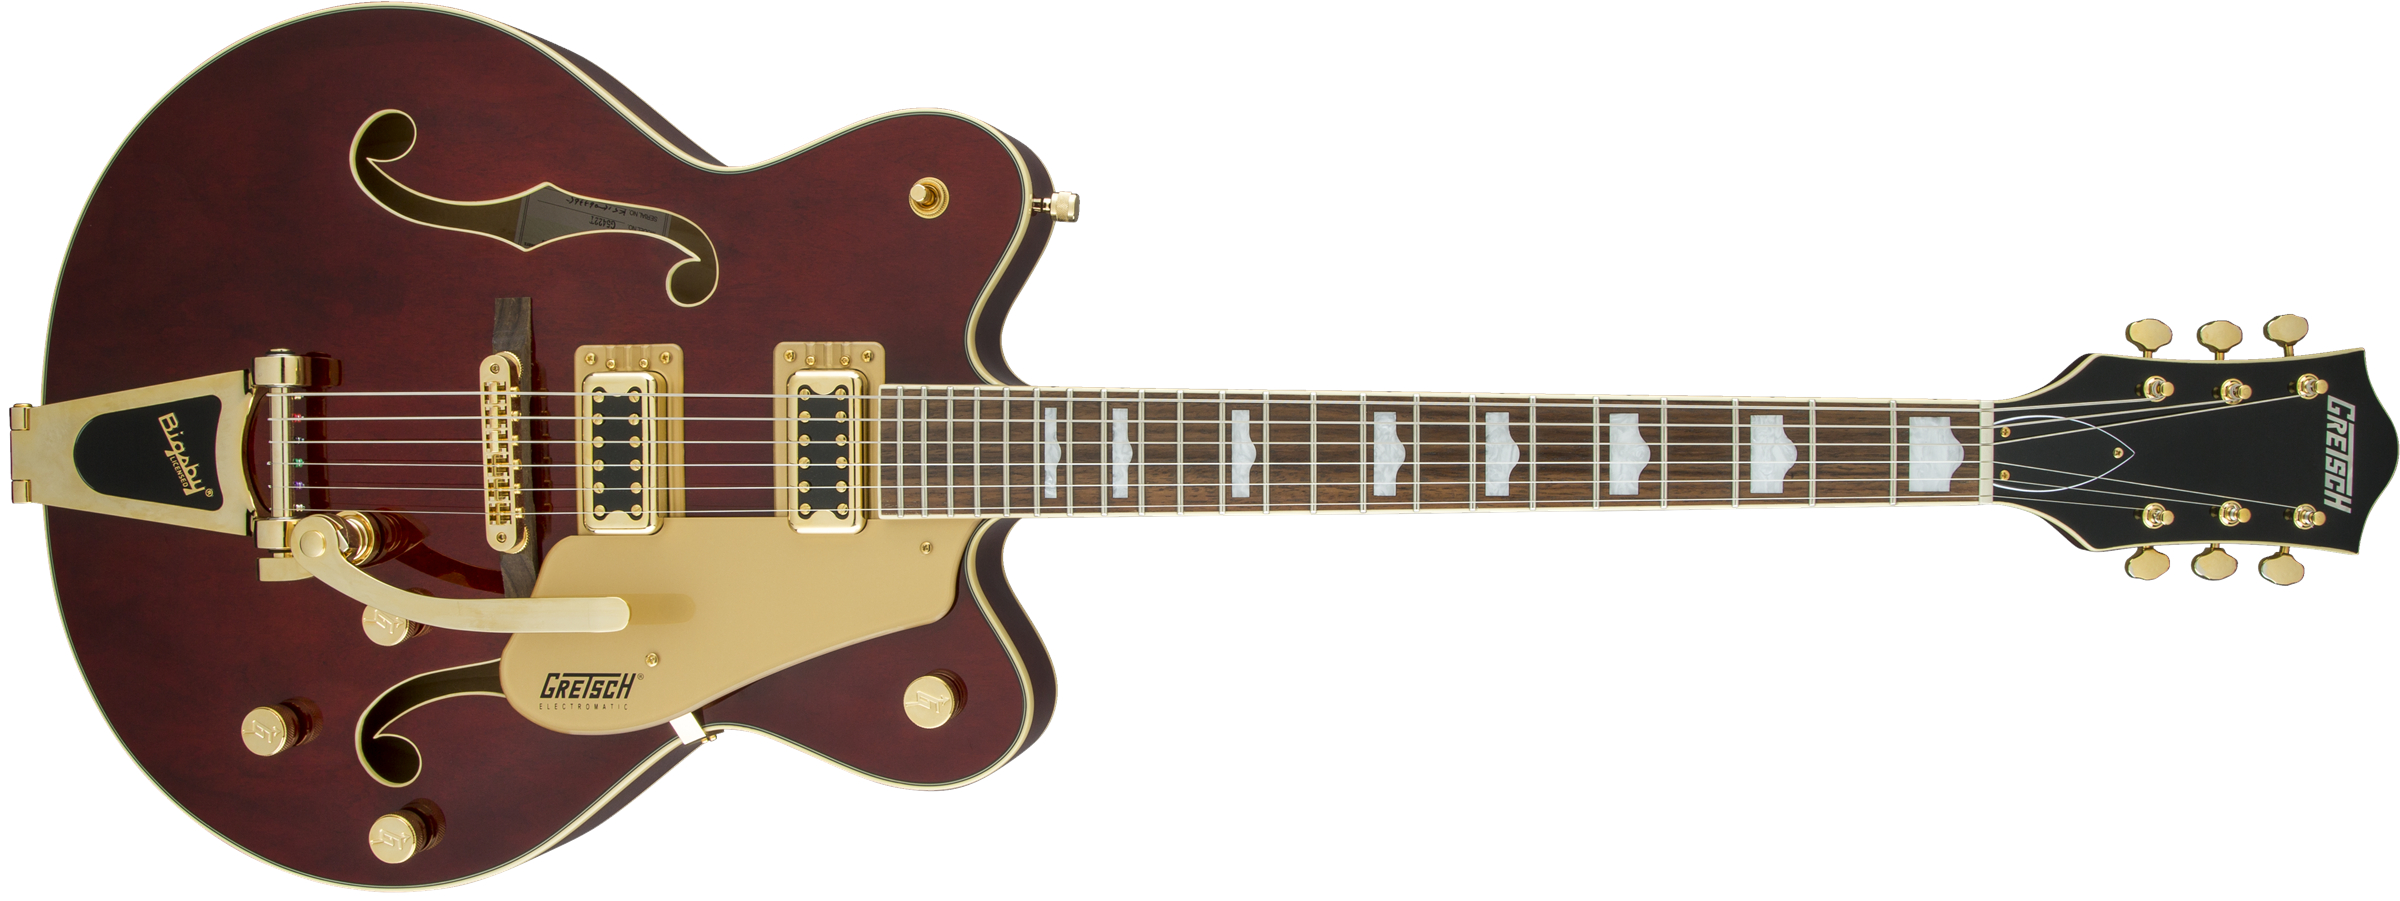 Gretsch G5422T Electromatic Hollow Body Double-Cut Bigsby Walnut Stain